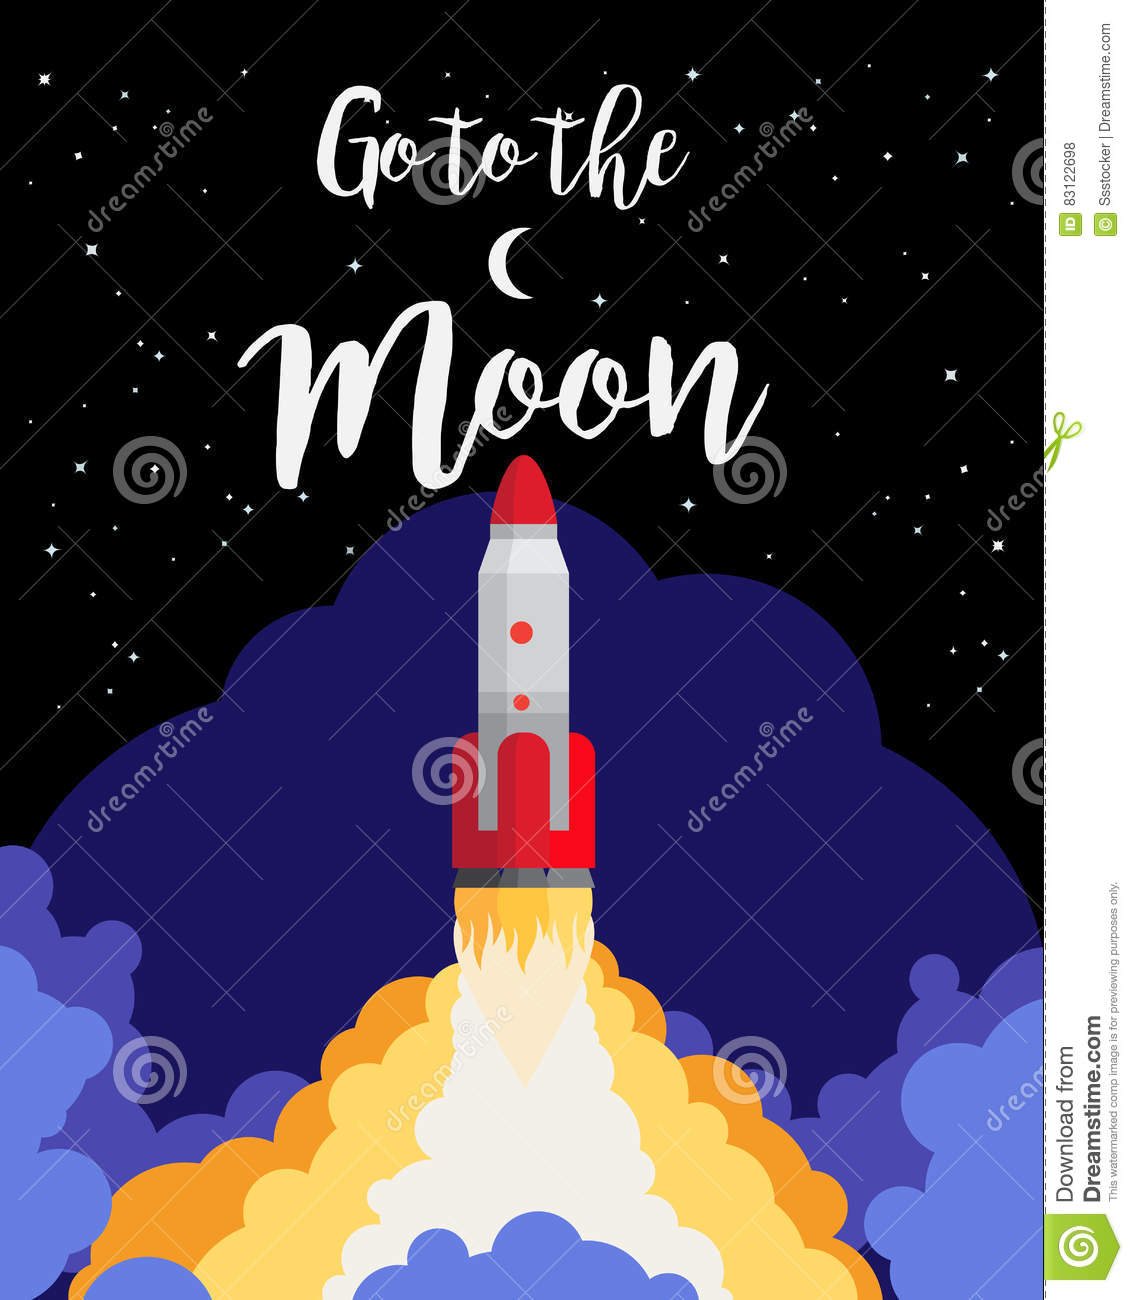 Go to the moon poster